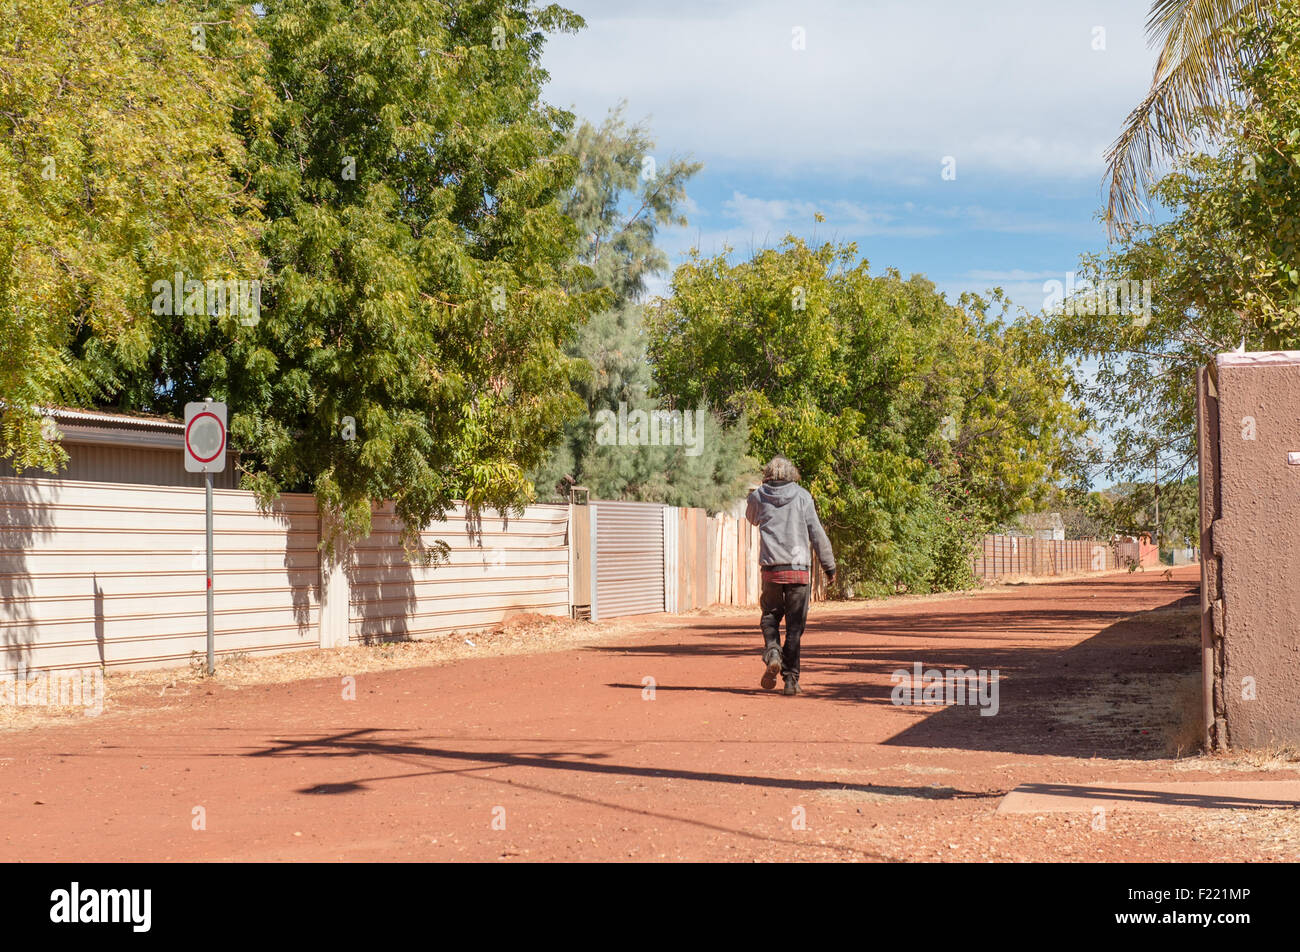 Aboriginal man walking down a residential street in the heart of Tennant Creek, Northern Territory, Australia - Stock Image